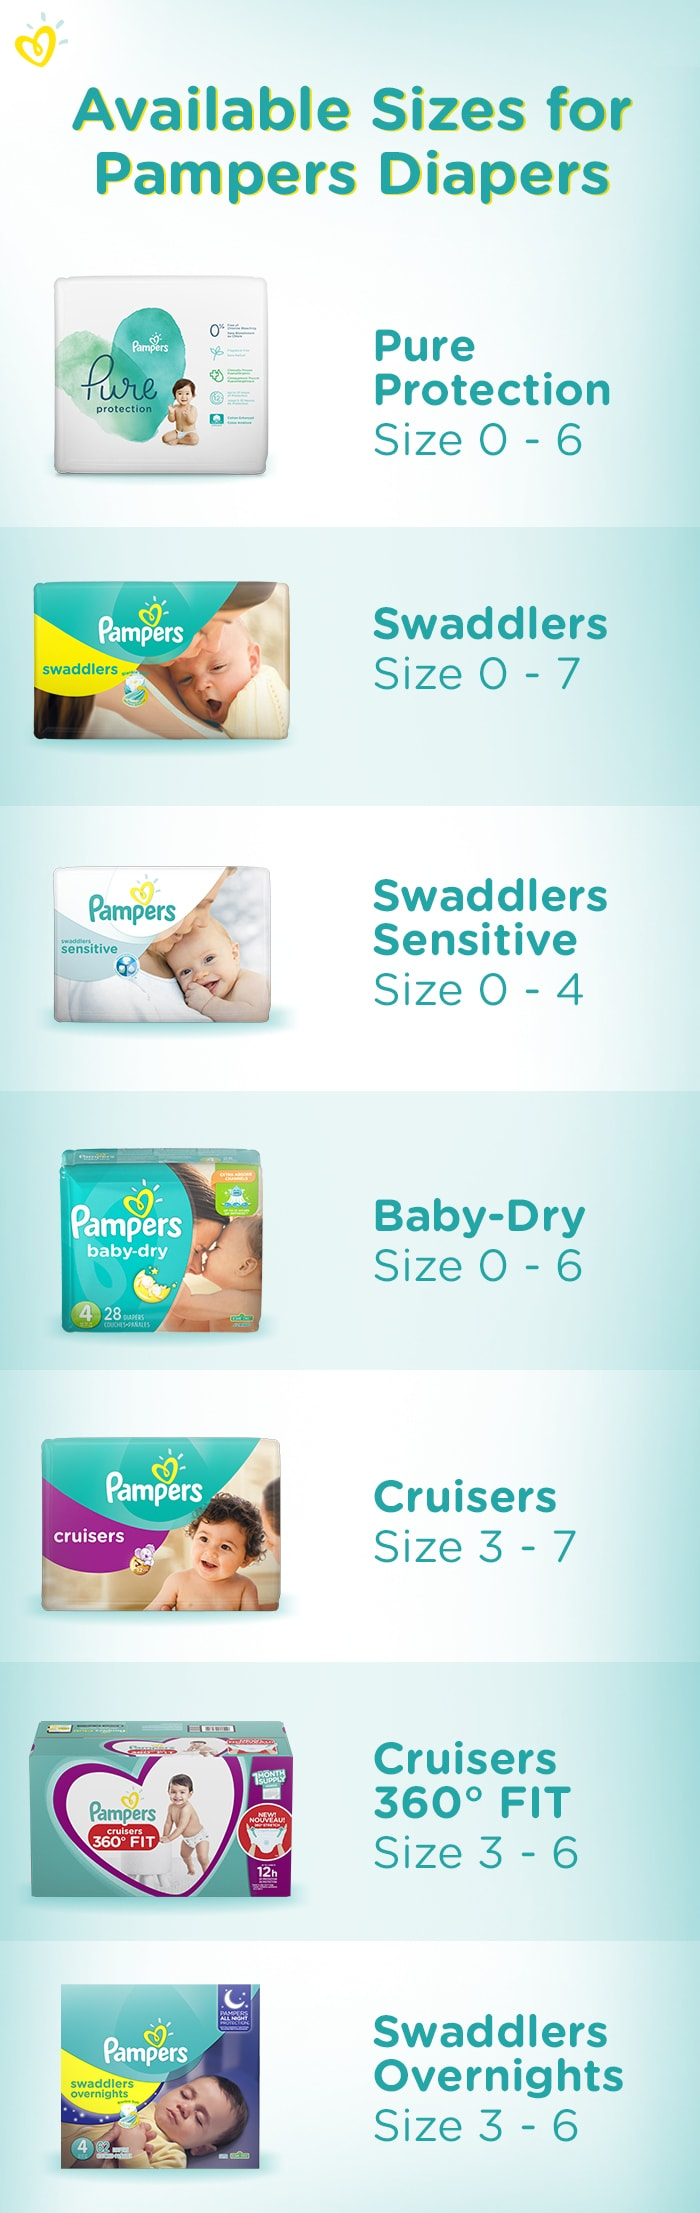 Diaper Size and Weight Chart | Pampers